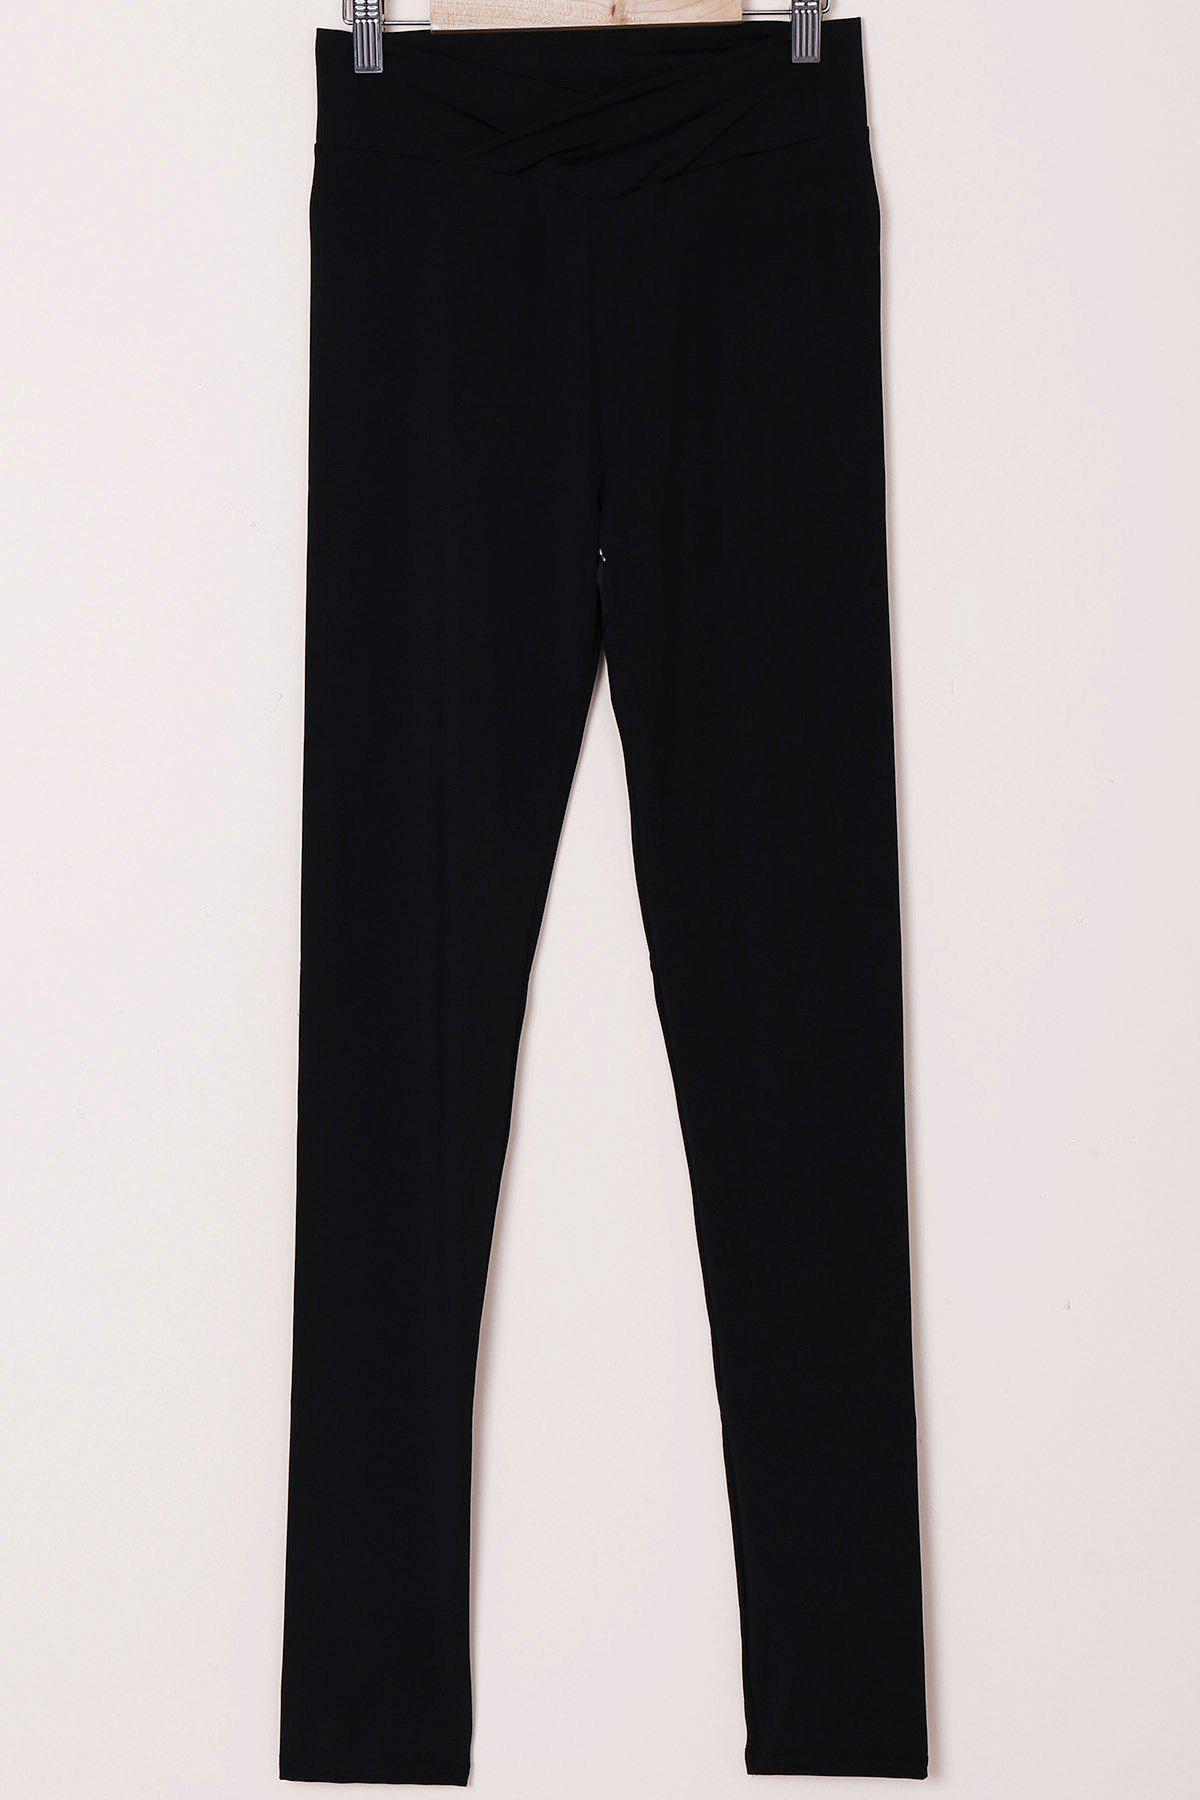 Active Solid Color High-Waisted Skinny Women's Pants